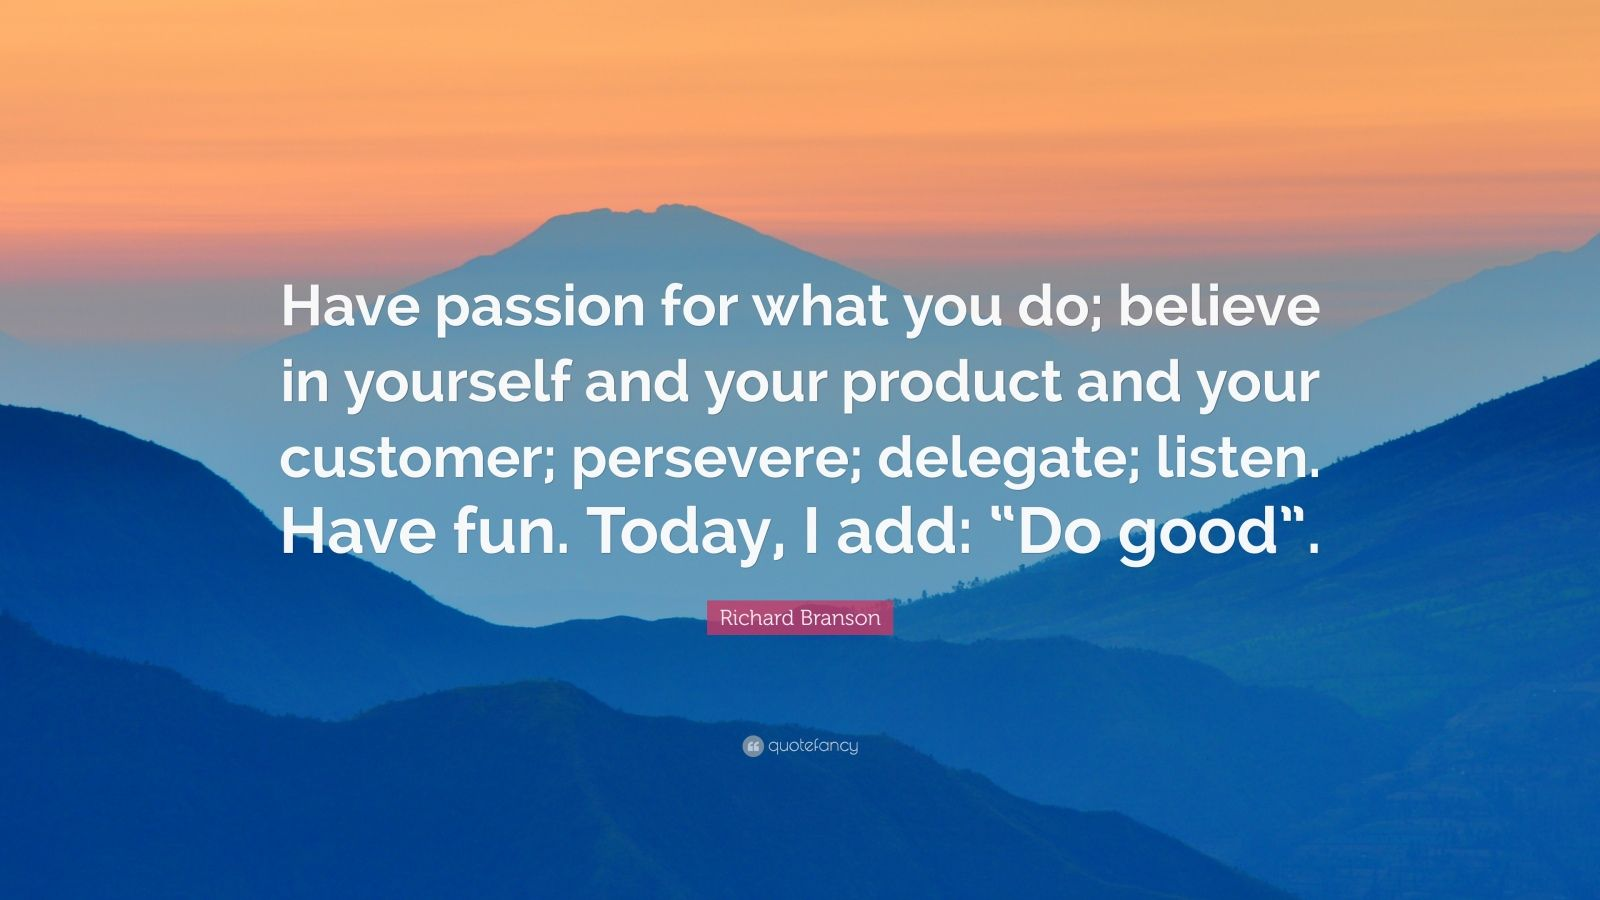 """Richard Branson Quote: """"Have passion for what you do; believe in yourself and your product and your customer; persevere; delegate; listen. Have fun. Today, I add: """"Do good""""."""""""